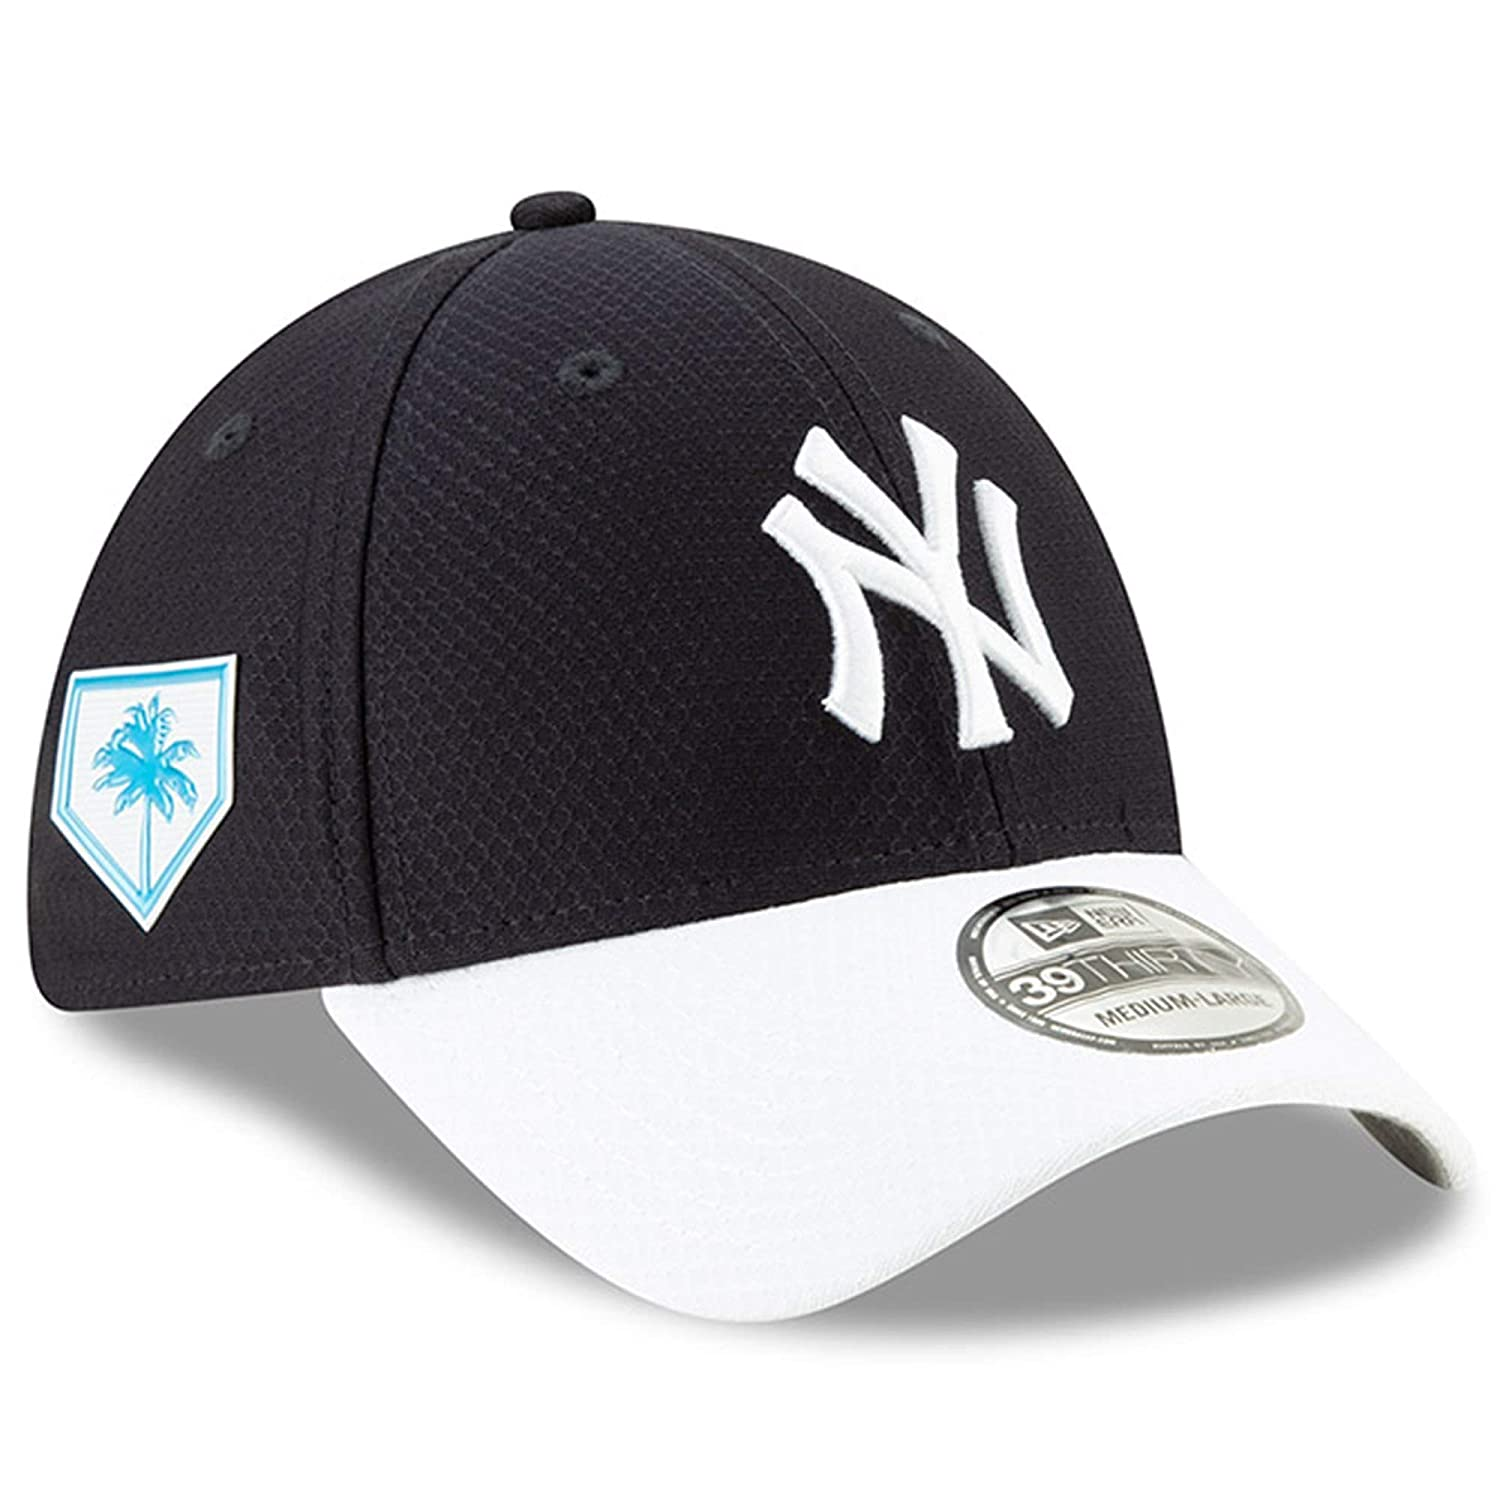 0c19de2aedf Amazon.com   New Era Men s New York Yankees Navy 2019 Spring Training  39THIRTY Fitted Hat   Sports   Outdoors